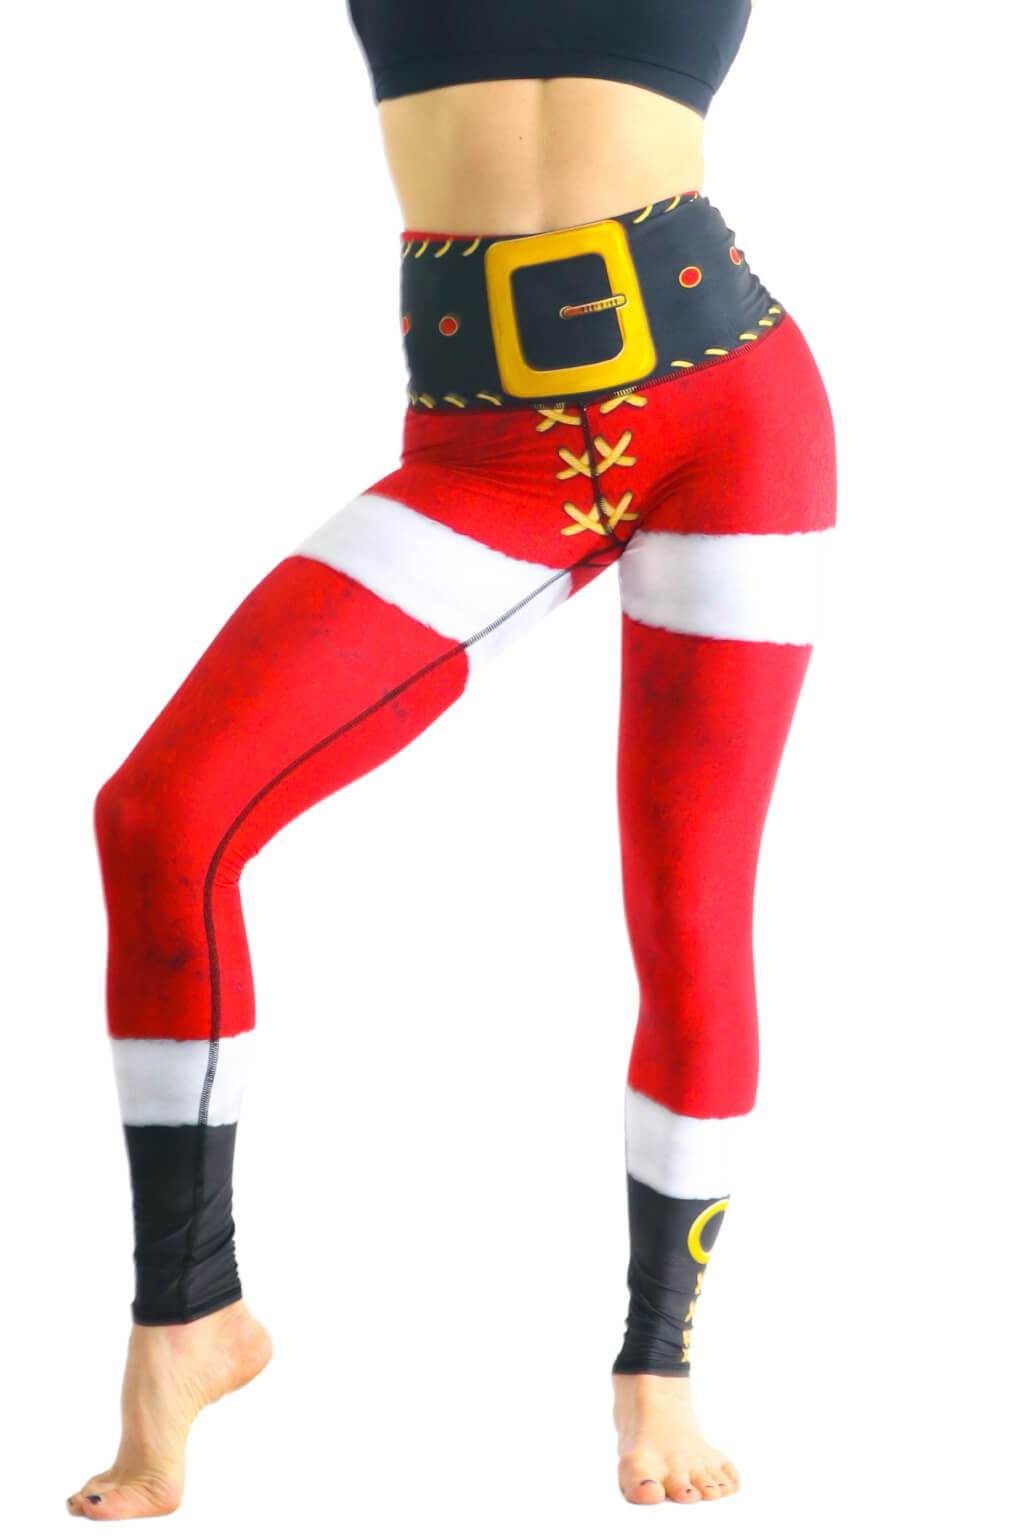 Yoga Democracy Squat Proof leggings in SantaCon Eco-friendly print